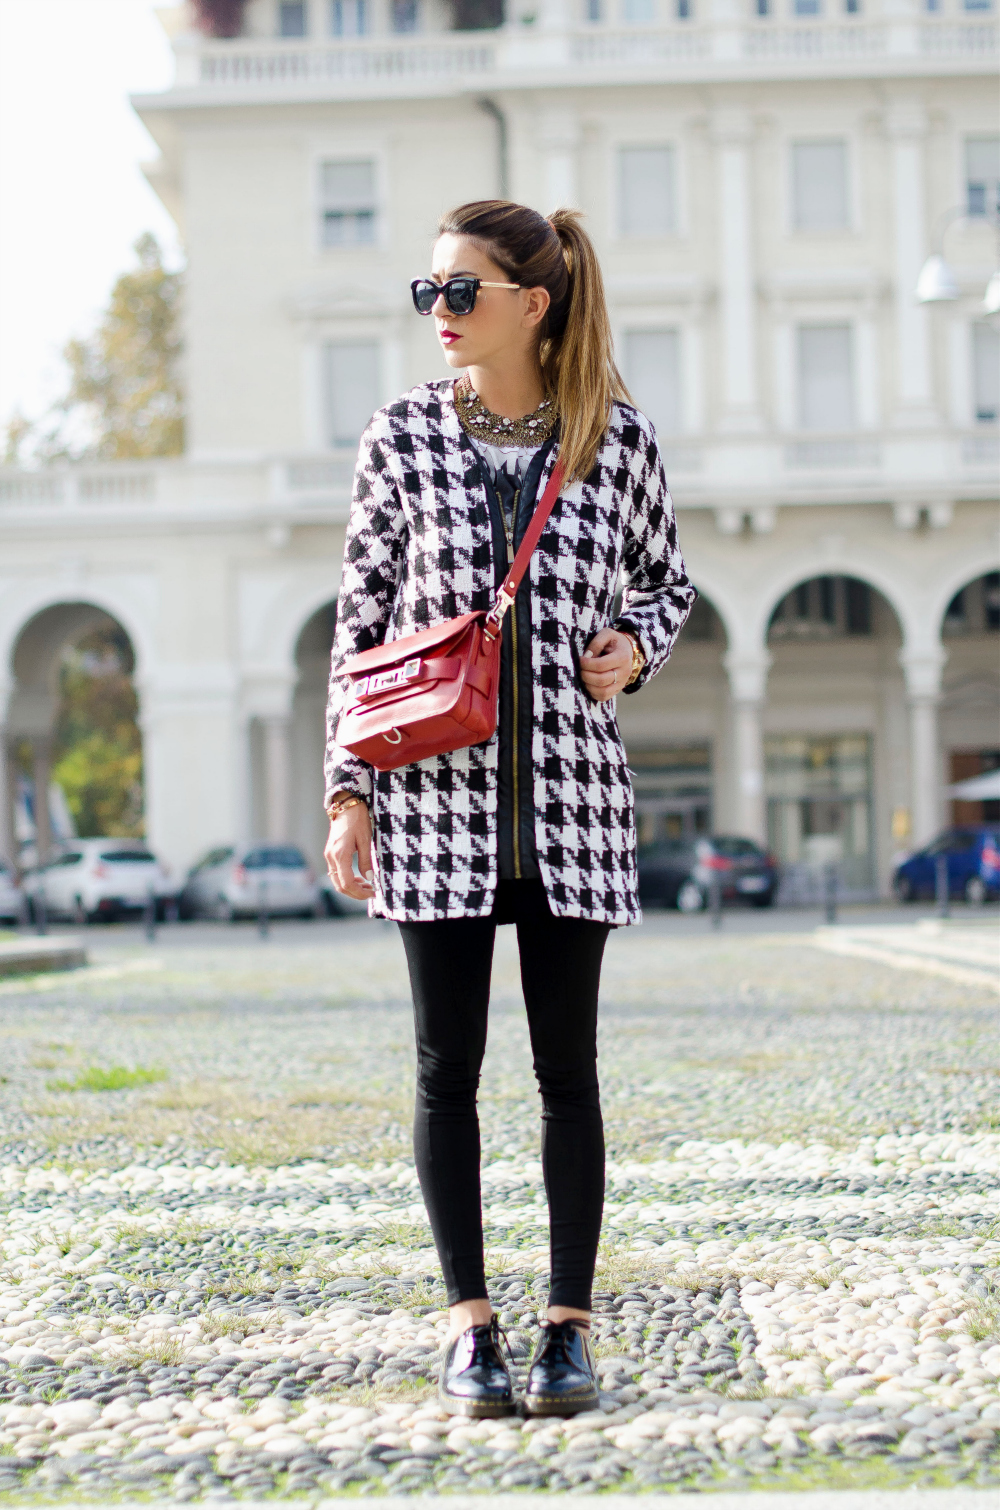 Nicoletta Reggio in her houndstooth pattern coat from Persunmall